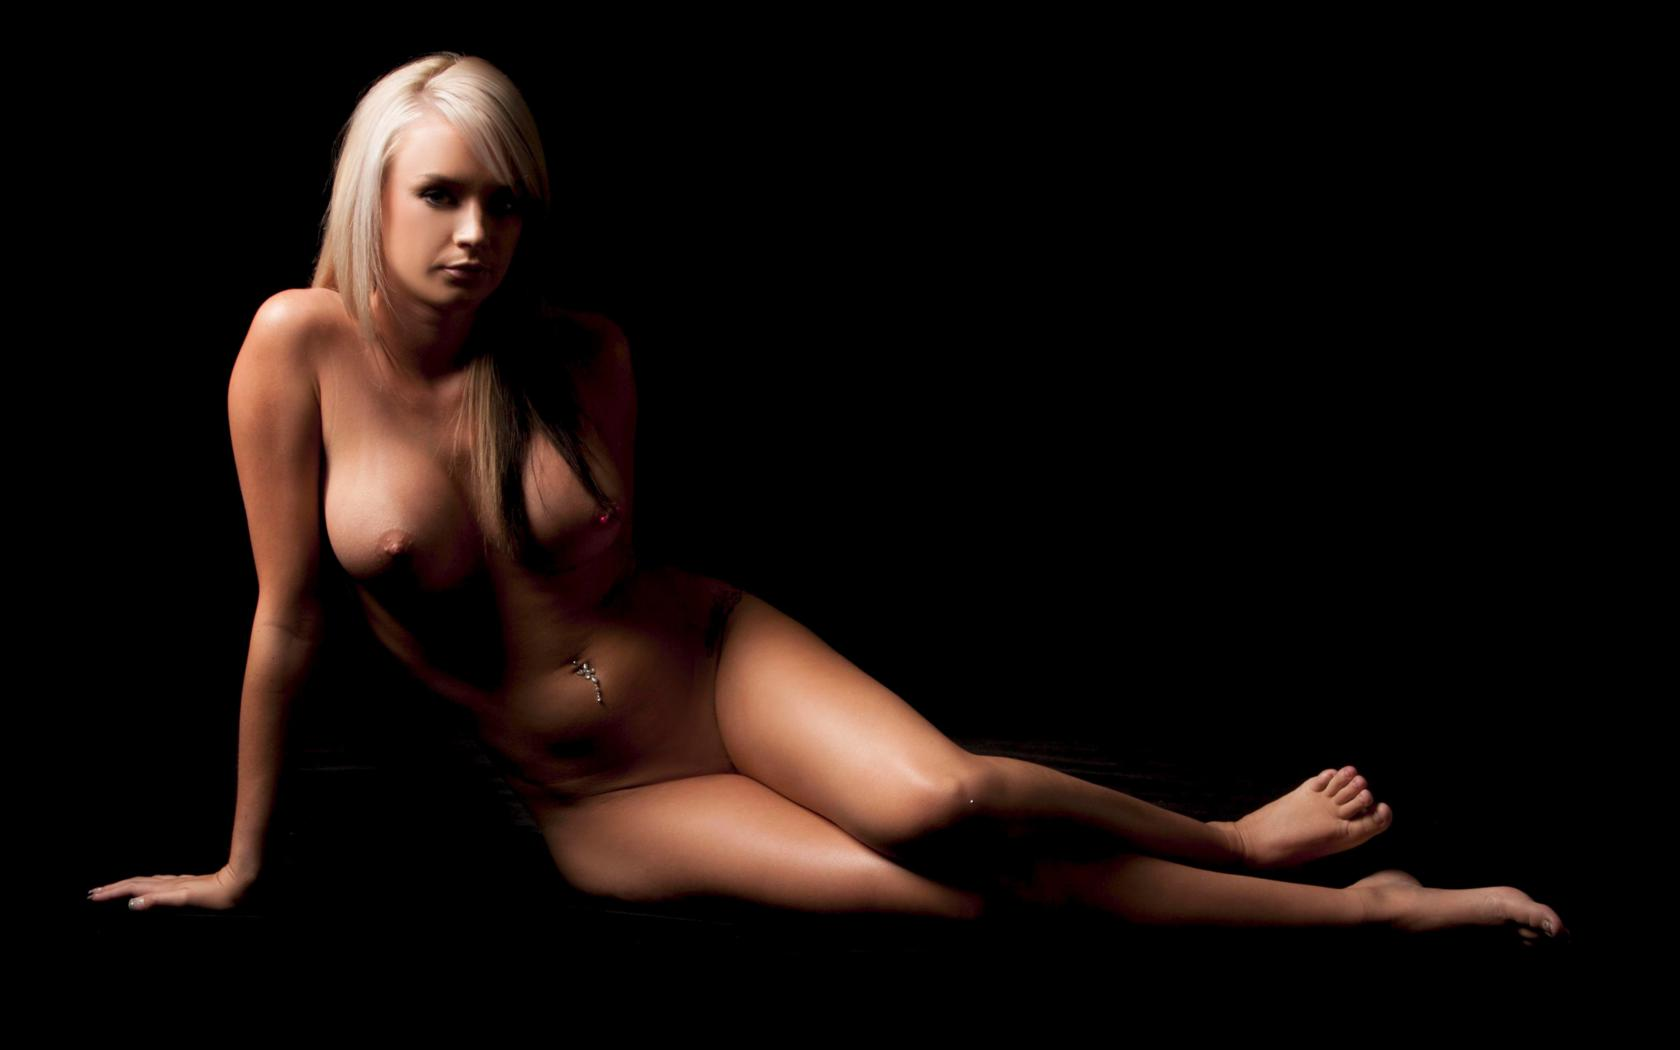 Download photo 1680x1050, erin, blonde, hot, nude, naked, sexy, cute, model, erotic, boobs, big ...